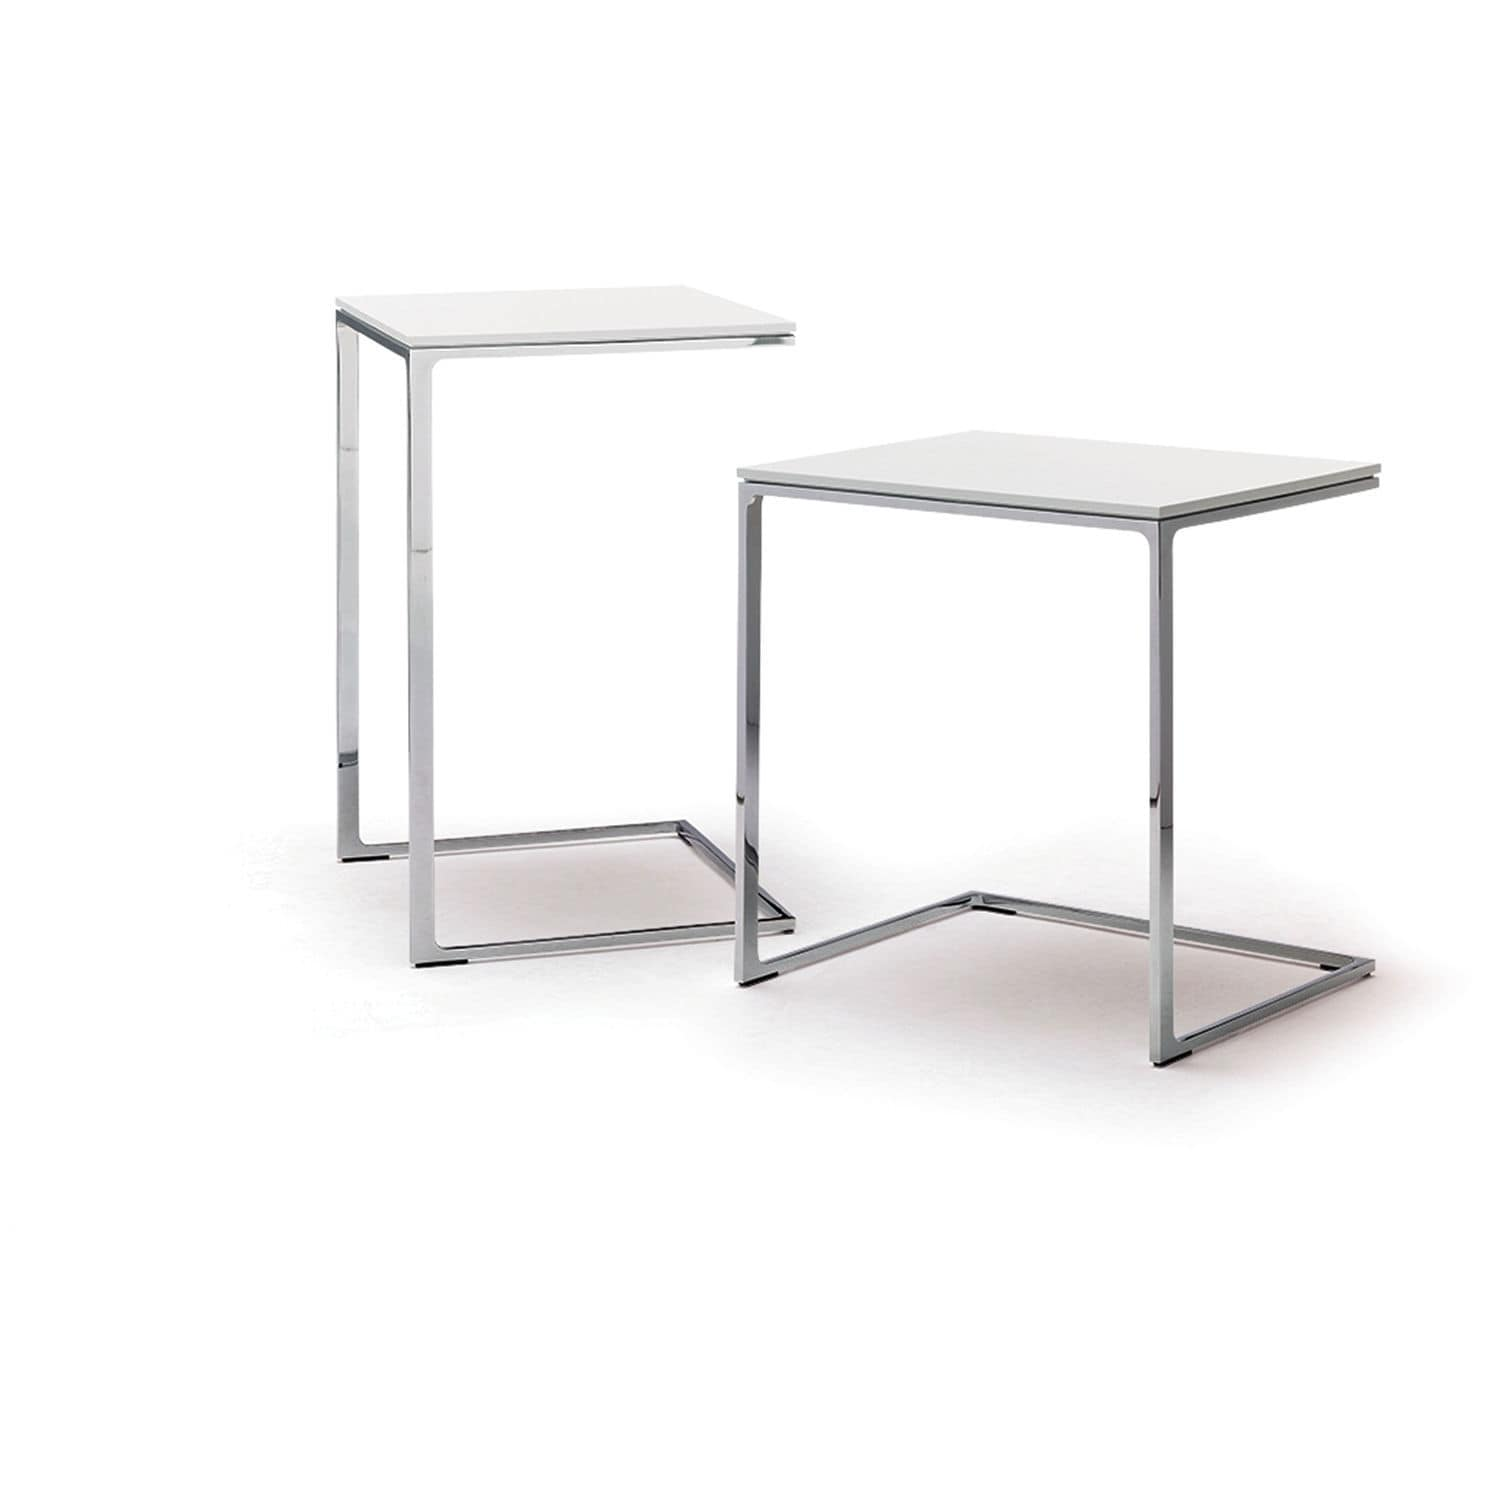 Contemporary Side Table / Steel / Rectangular / White MELL C By Jehs U0026 Laub  ...